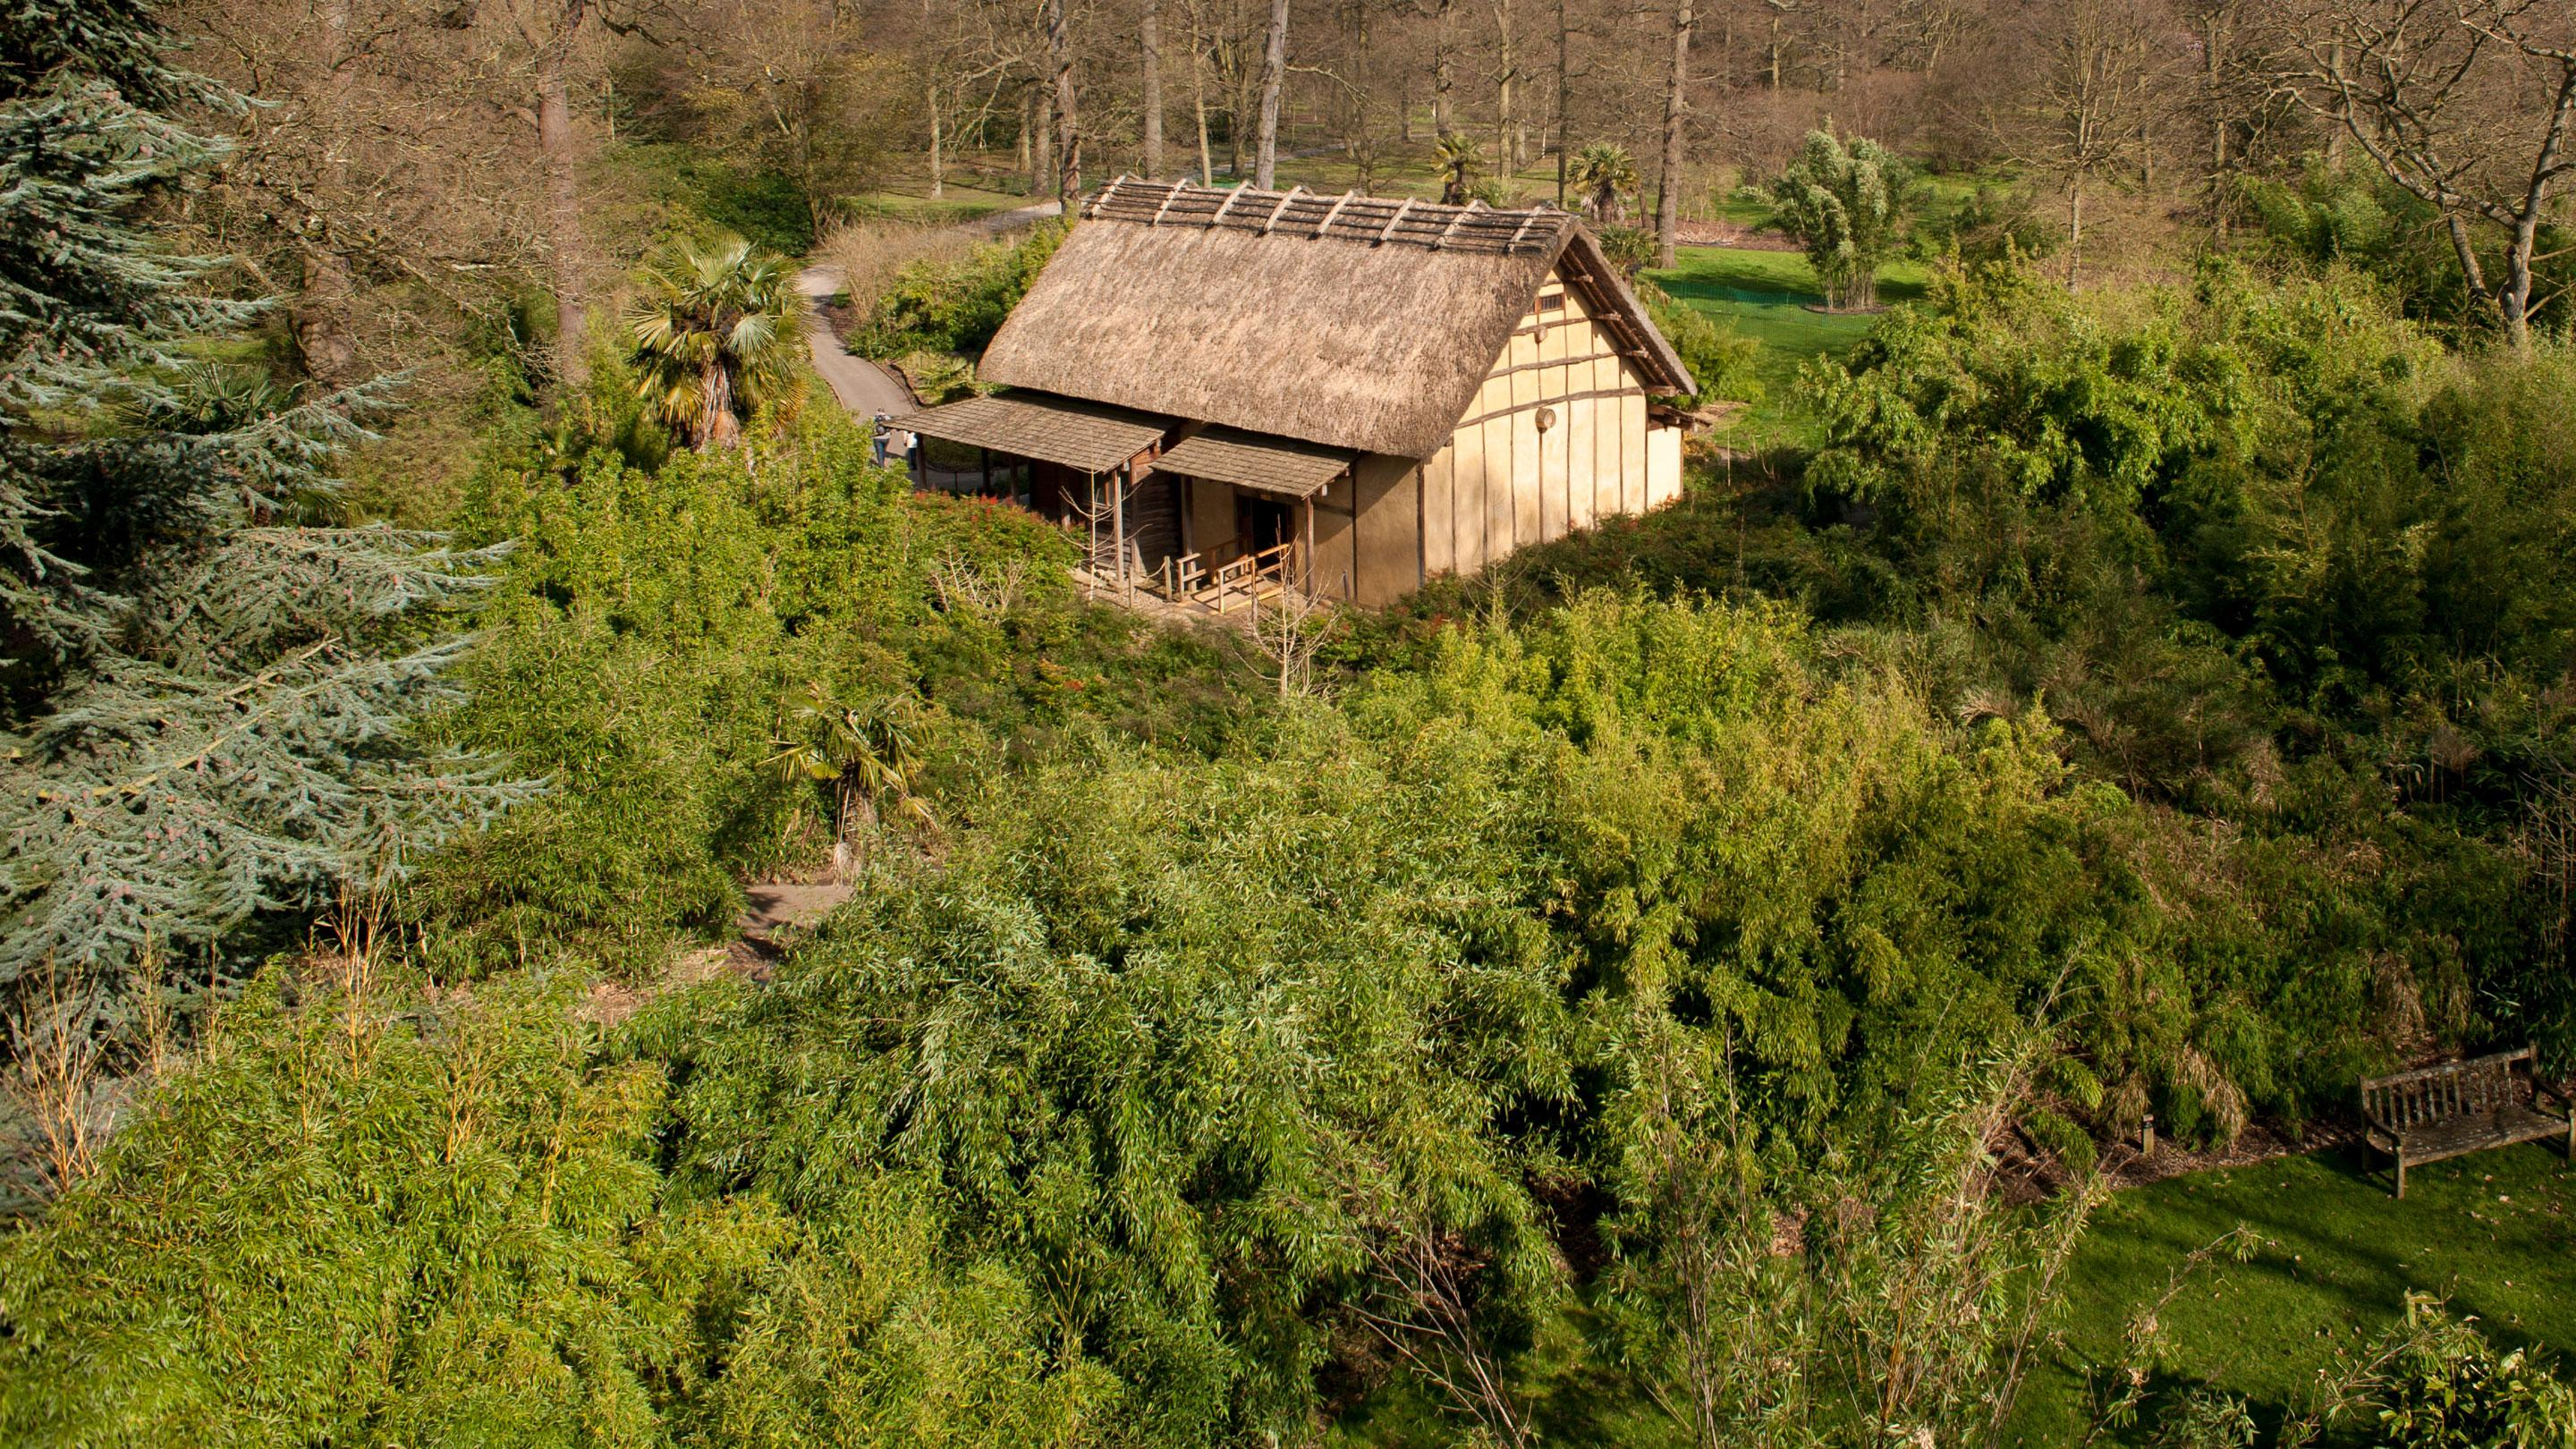 minka house and bamboo garden - Bamboo Garden